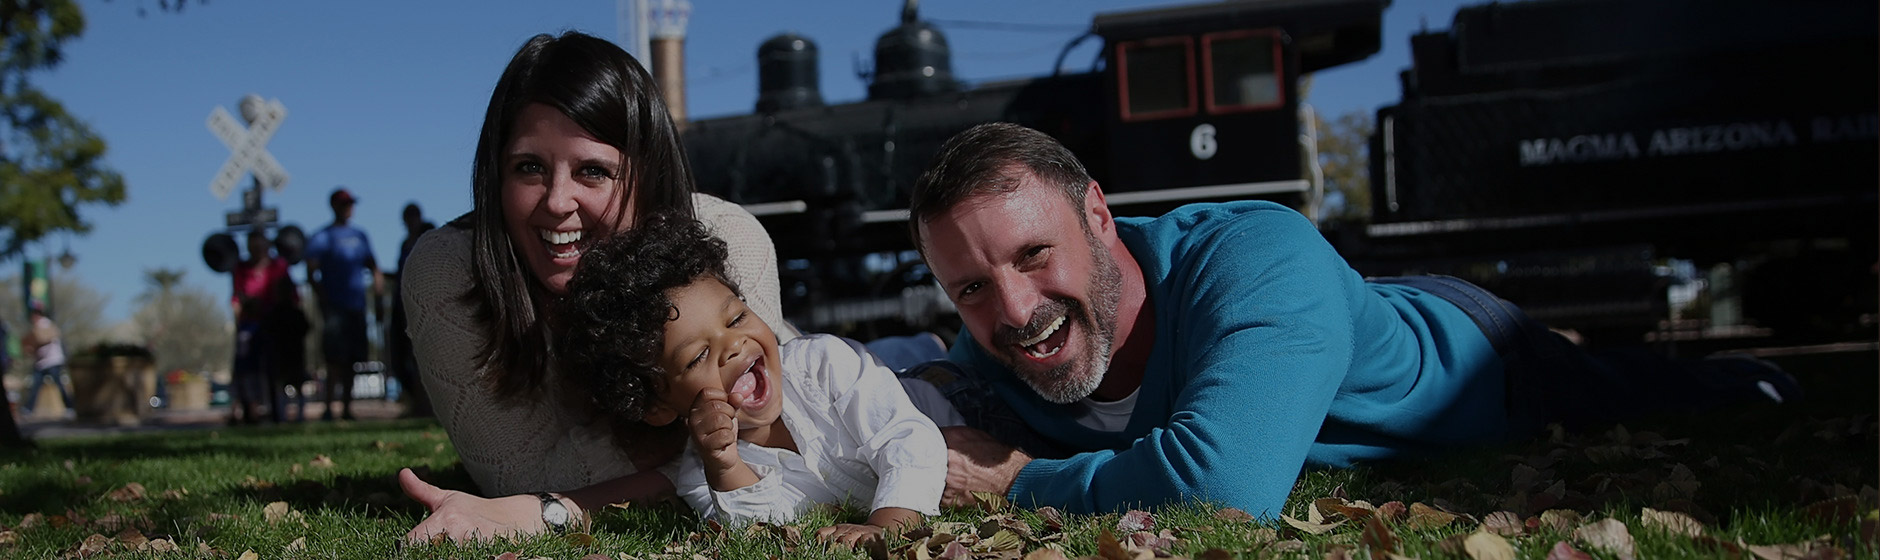 McCormick-Stillman Railroad Park has Fun for the Whole Family!